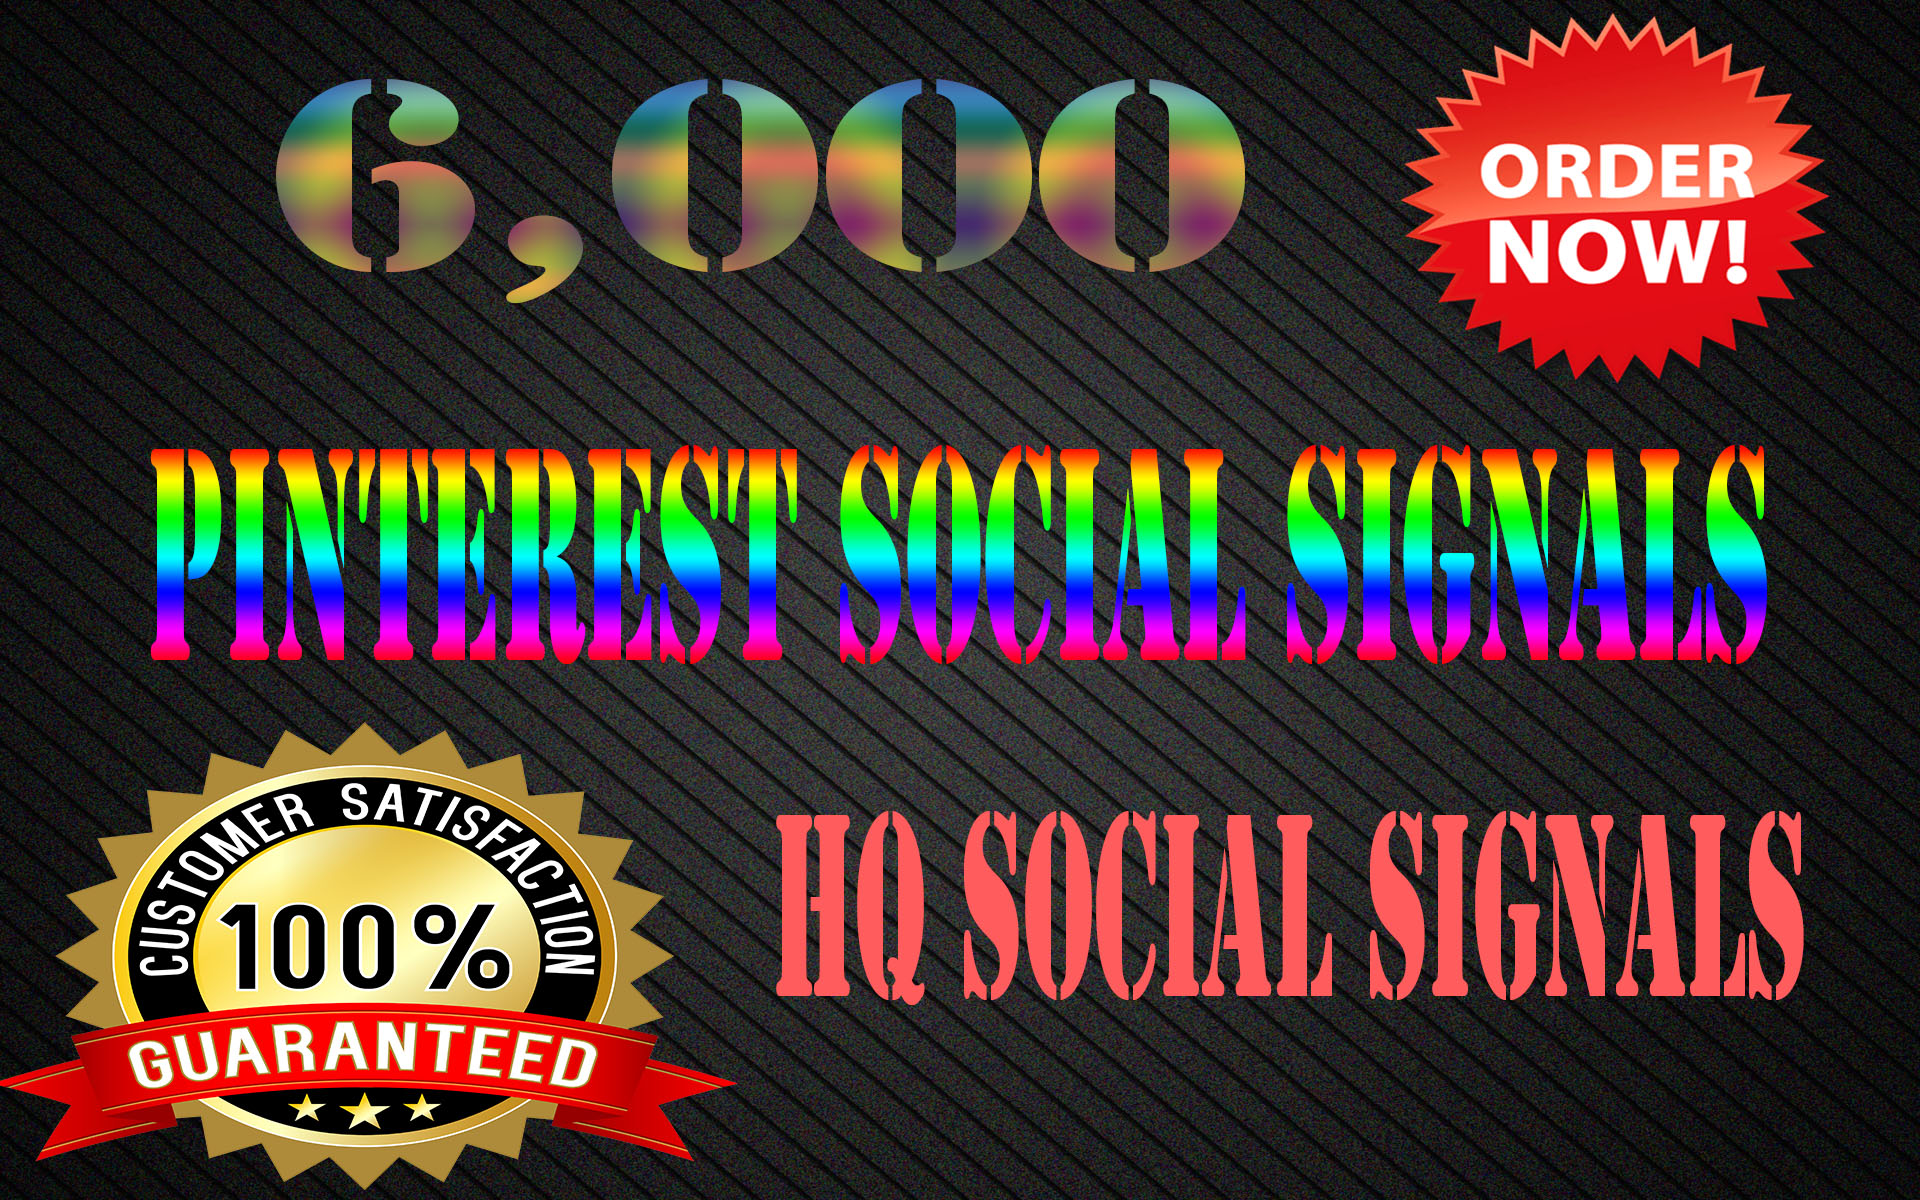 Boost-Your-Website-With-20-000-POWERFUL-Social-Signals-From-Only-HIGH-PR-Backlink-Websites